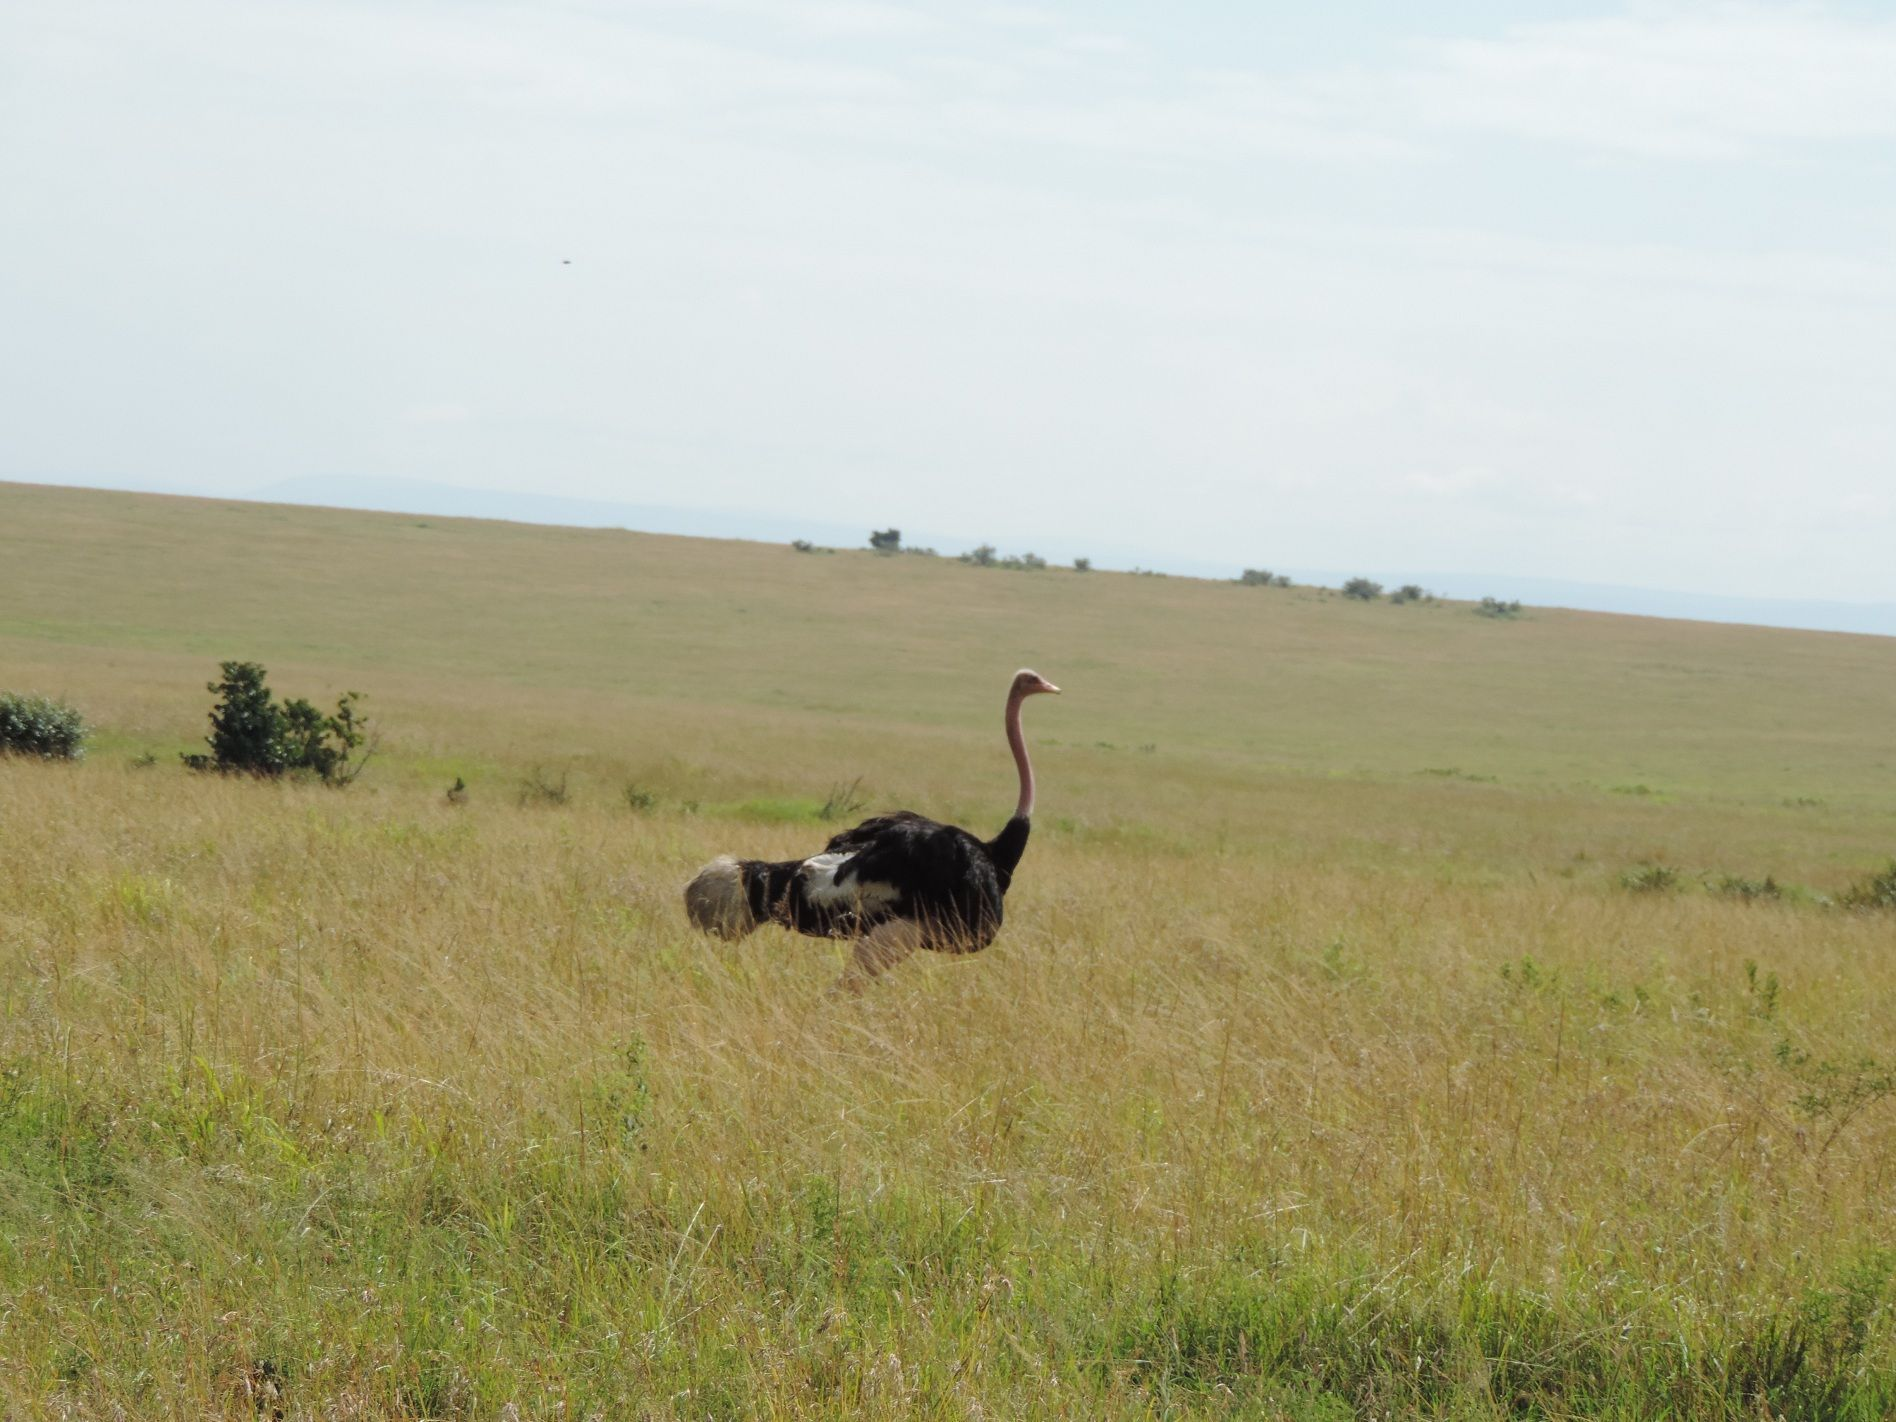 It's a classic safari destination and one of the best